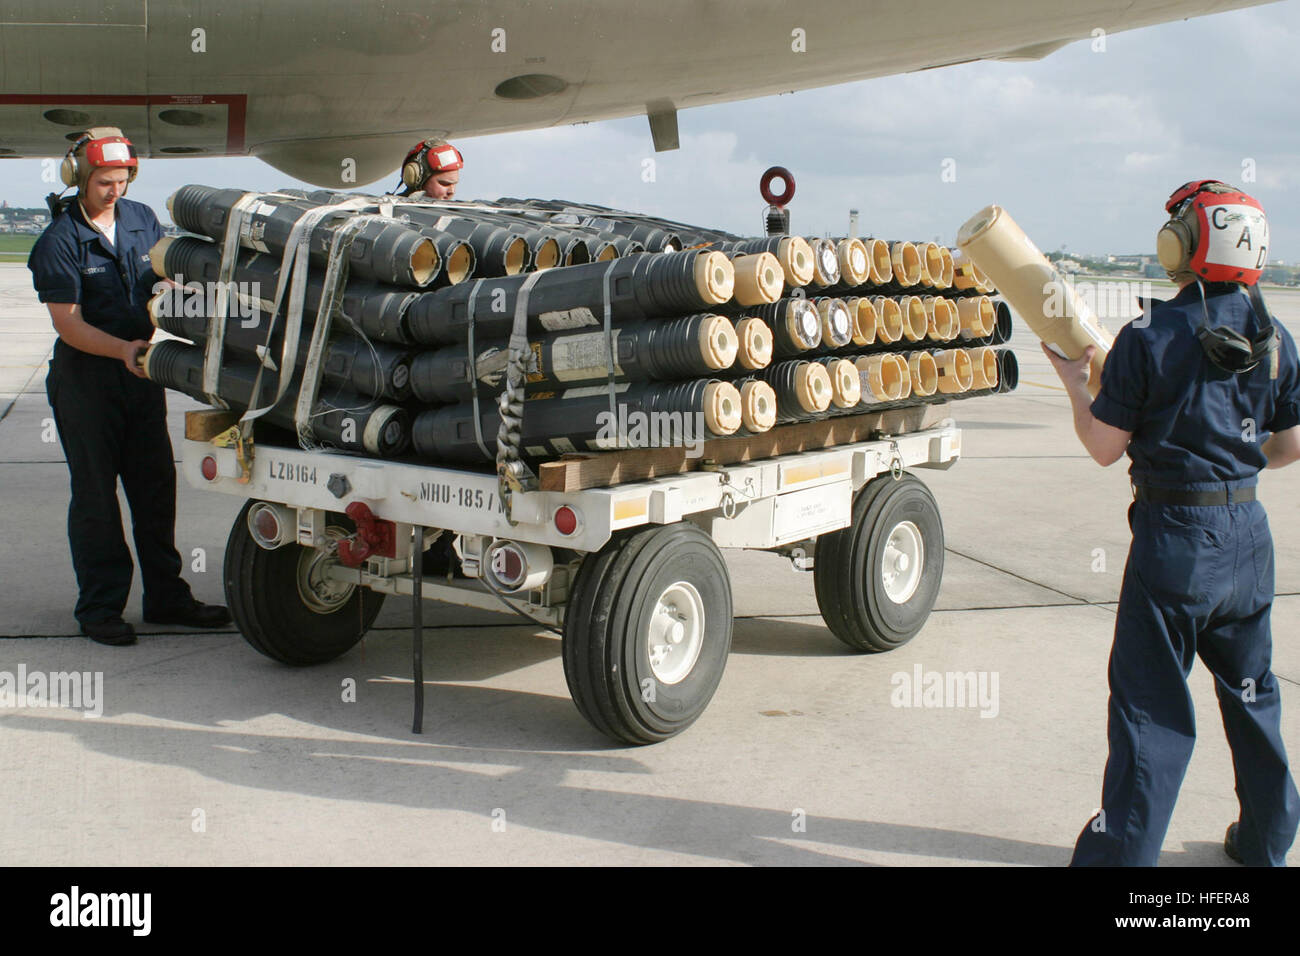 050415-N-3122S-009 Okinawa, Japan (April 15, 2005)--Aviation Ordnanceman assigned to the 'Fighting Tigers' - Stock Image